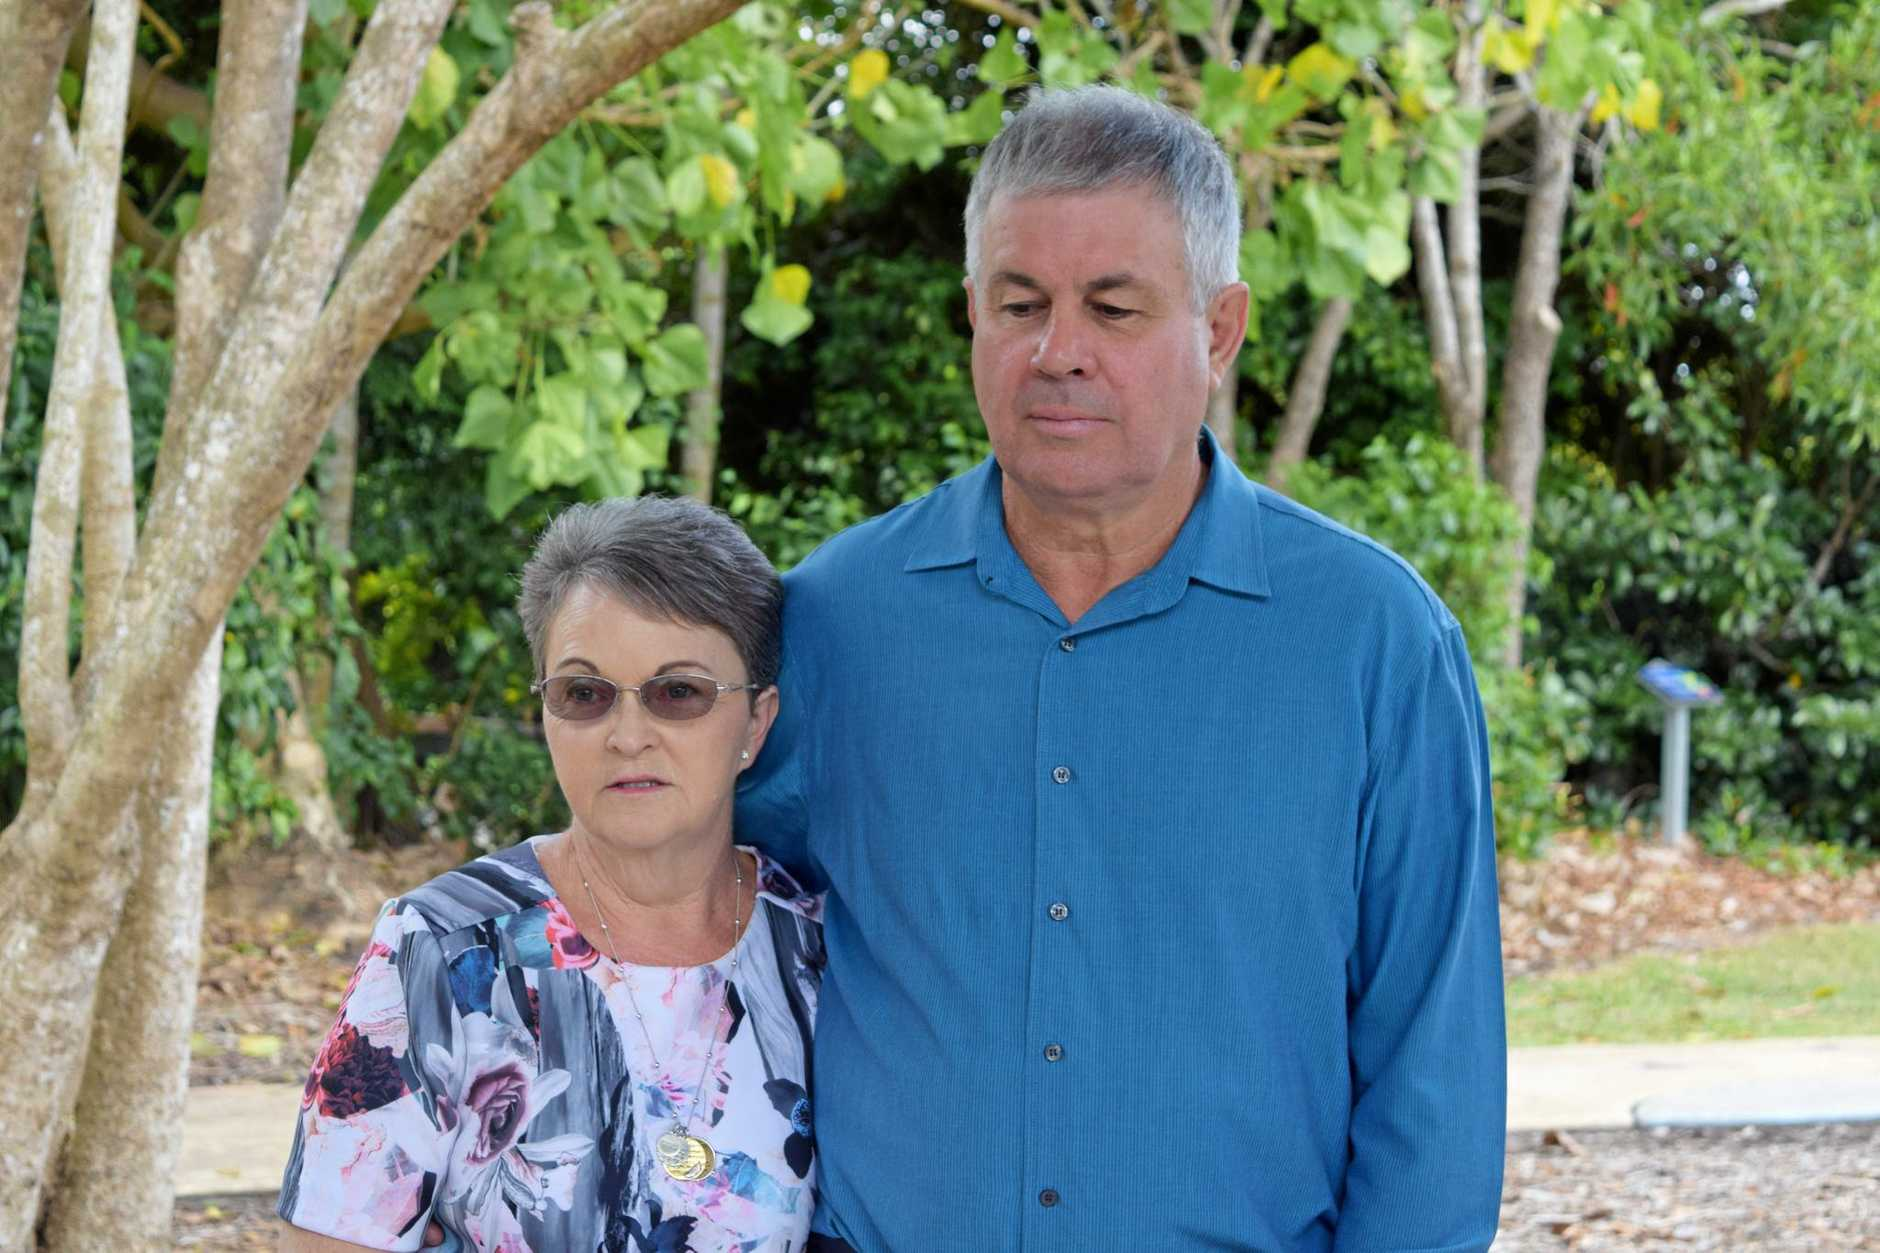 Leanne and Gary Pullen spoke at the Botanic Gardens this morning after finding out a man who was involved in their sons death had his parole date approved.